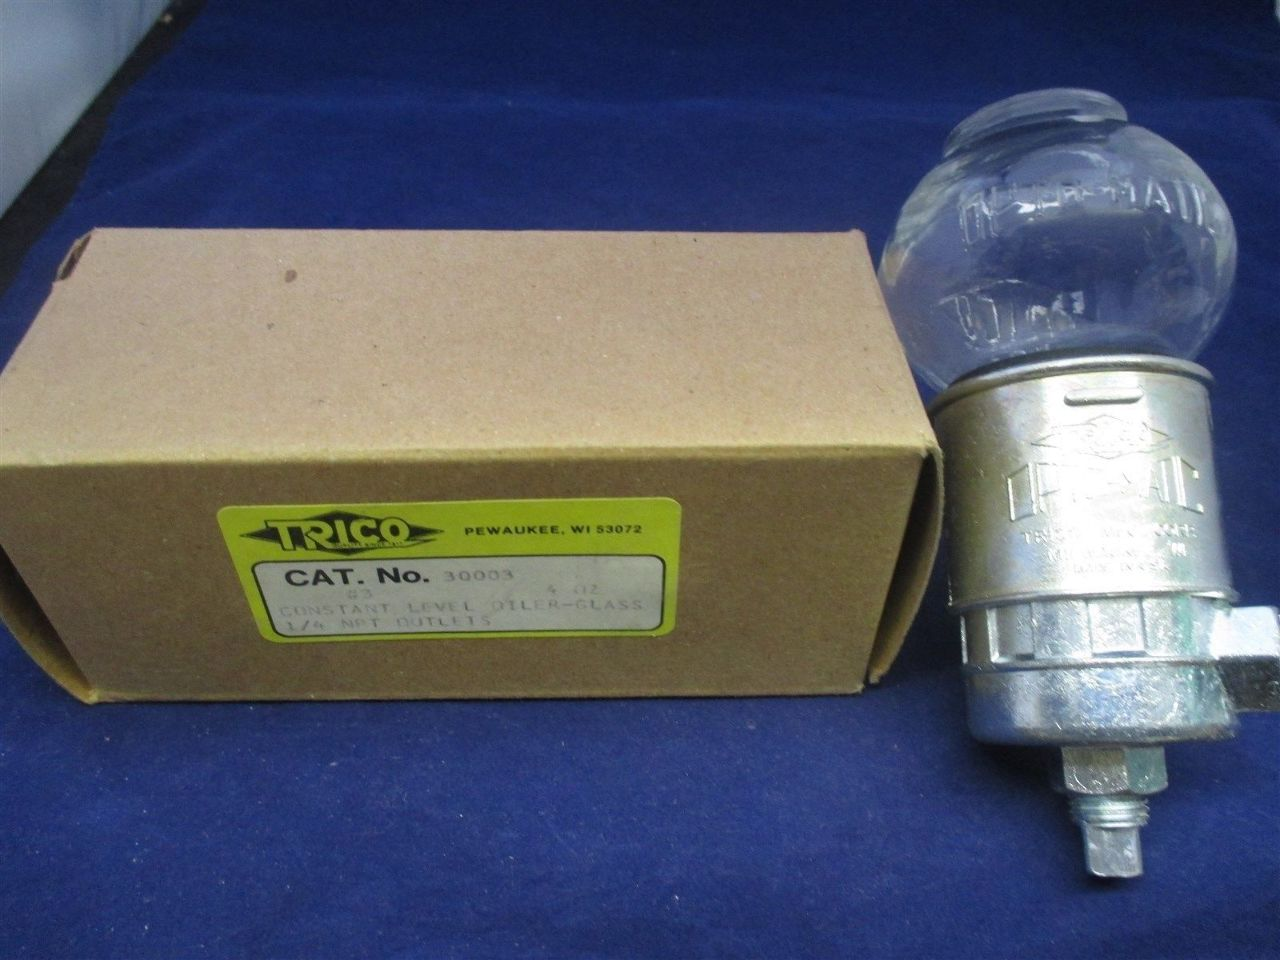 Trico 30003 Contstant Level Oiler-Glass new